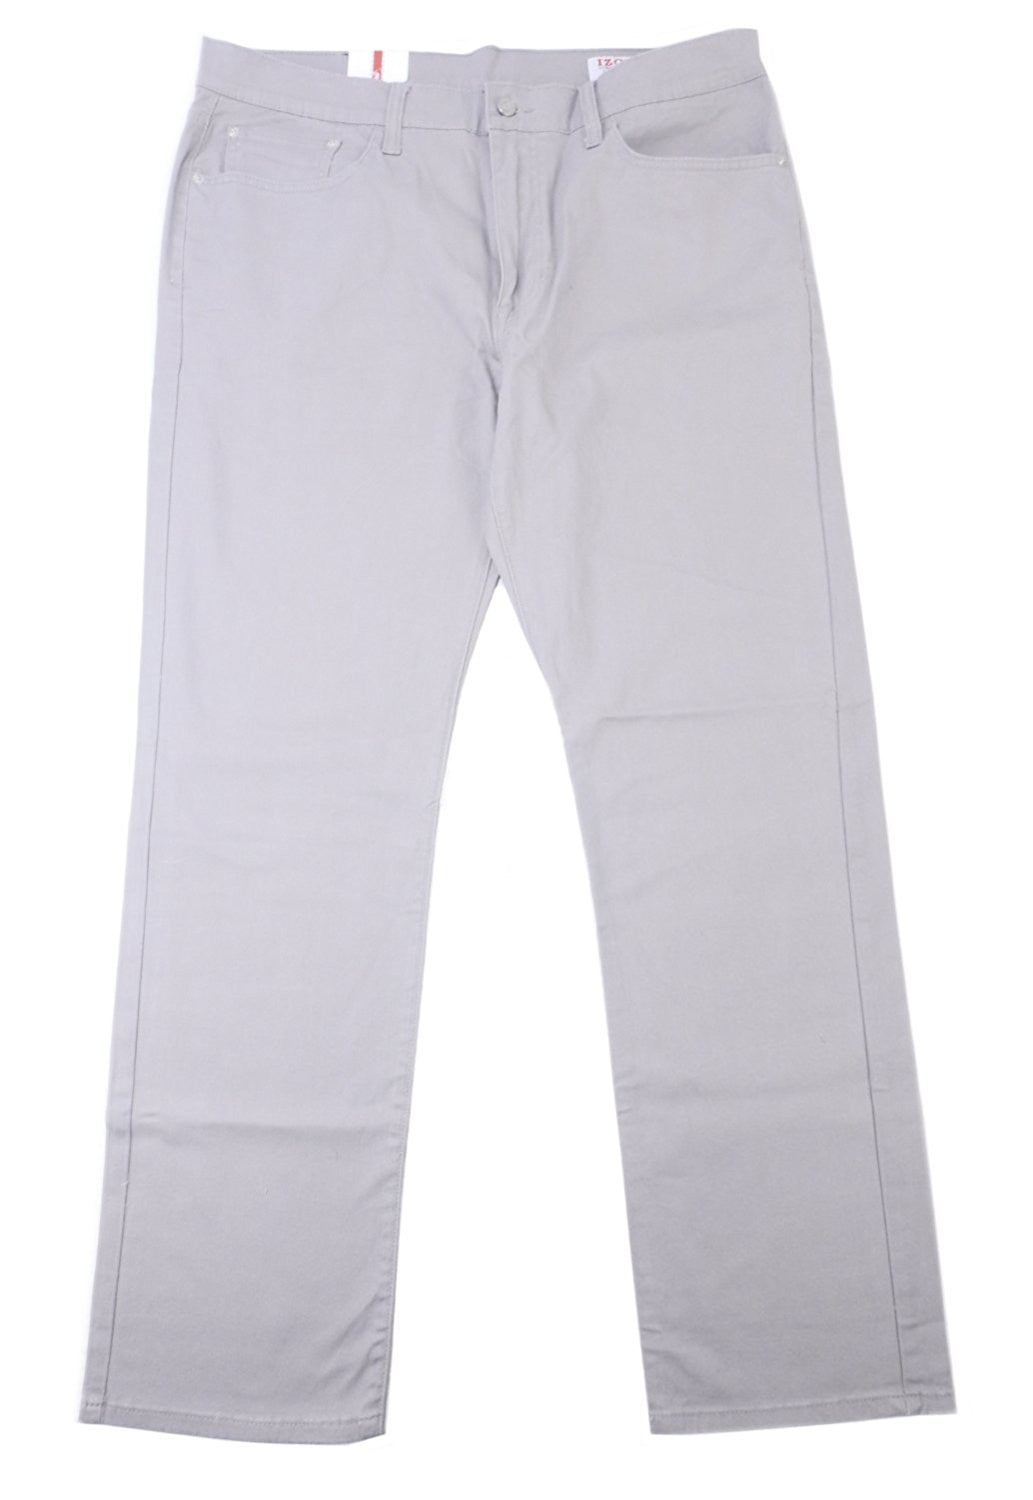 IZOD Men's Size 34 x 30 Straight Fit Comfort Stretch Pant, Alloy Light